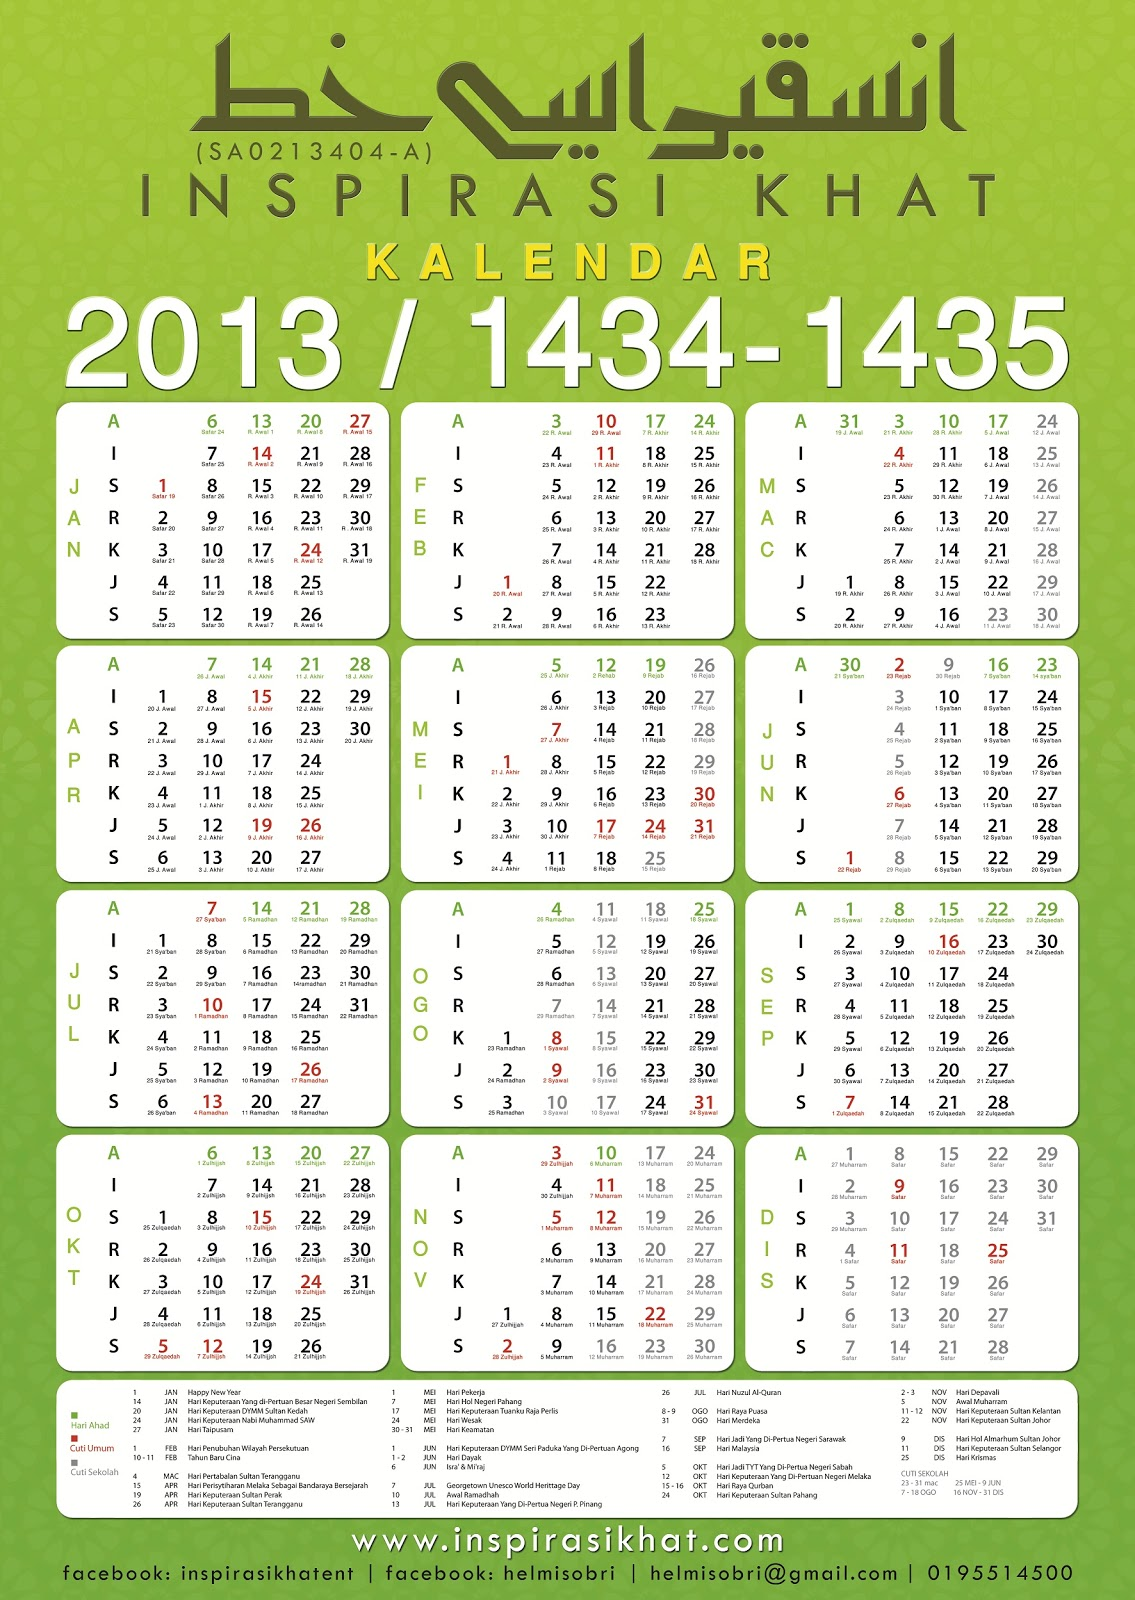 KALENDAR 2013 /1434-1435 FREE DOWNLOAD